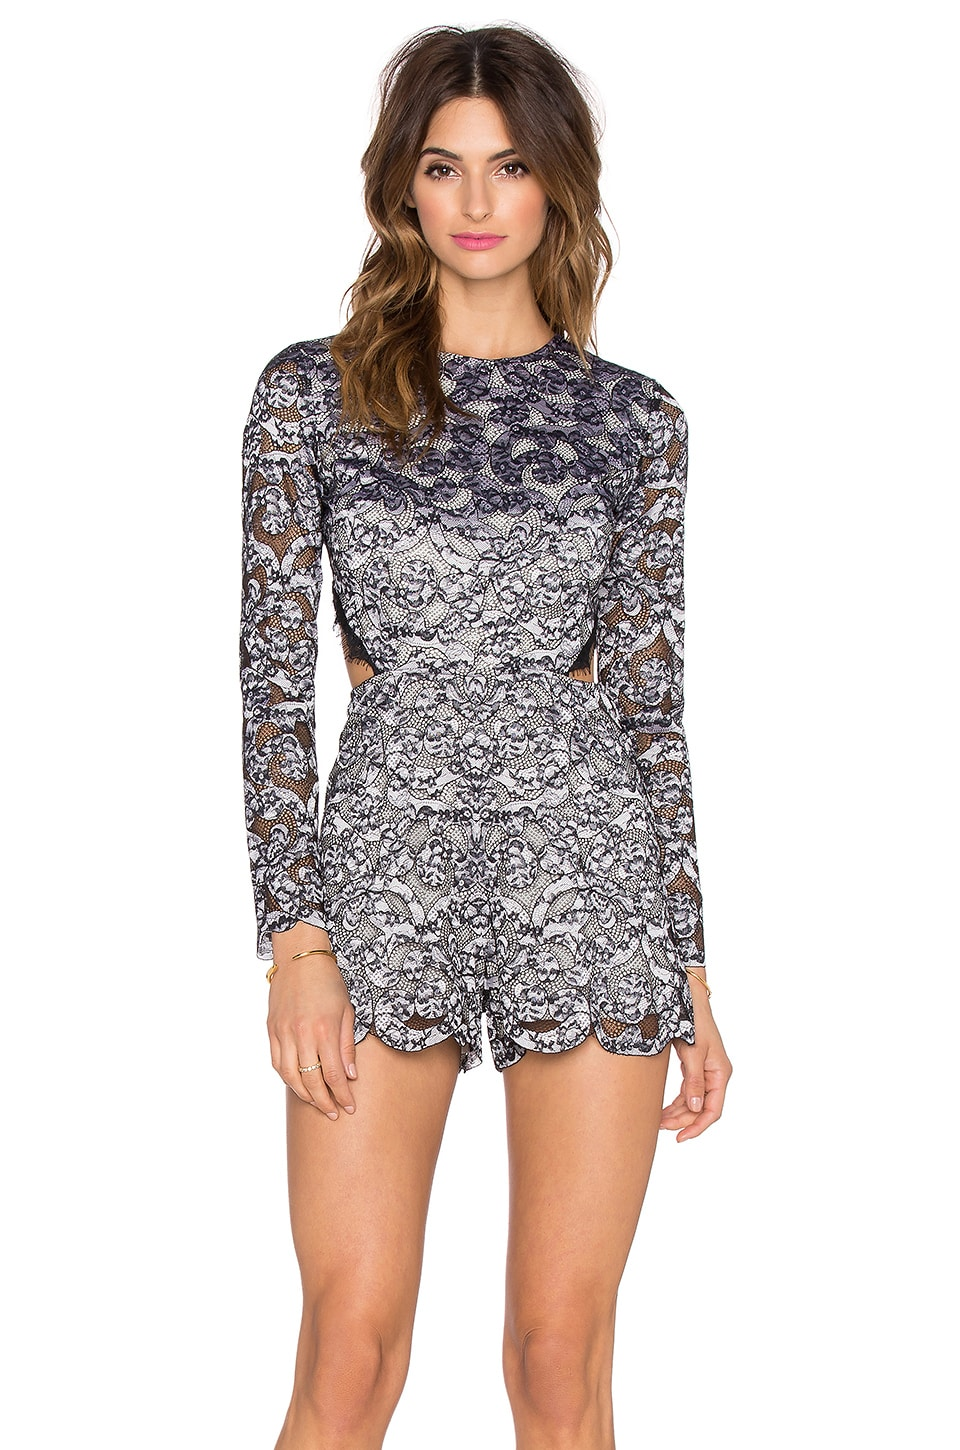 Alexis Deema Open Back Romper in Floral Lace